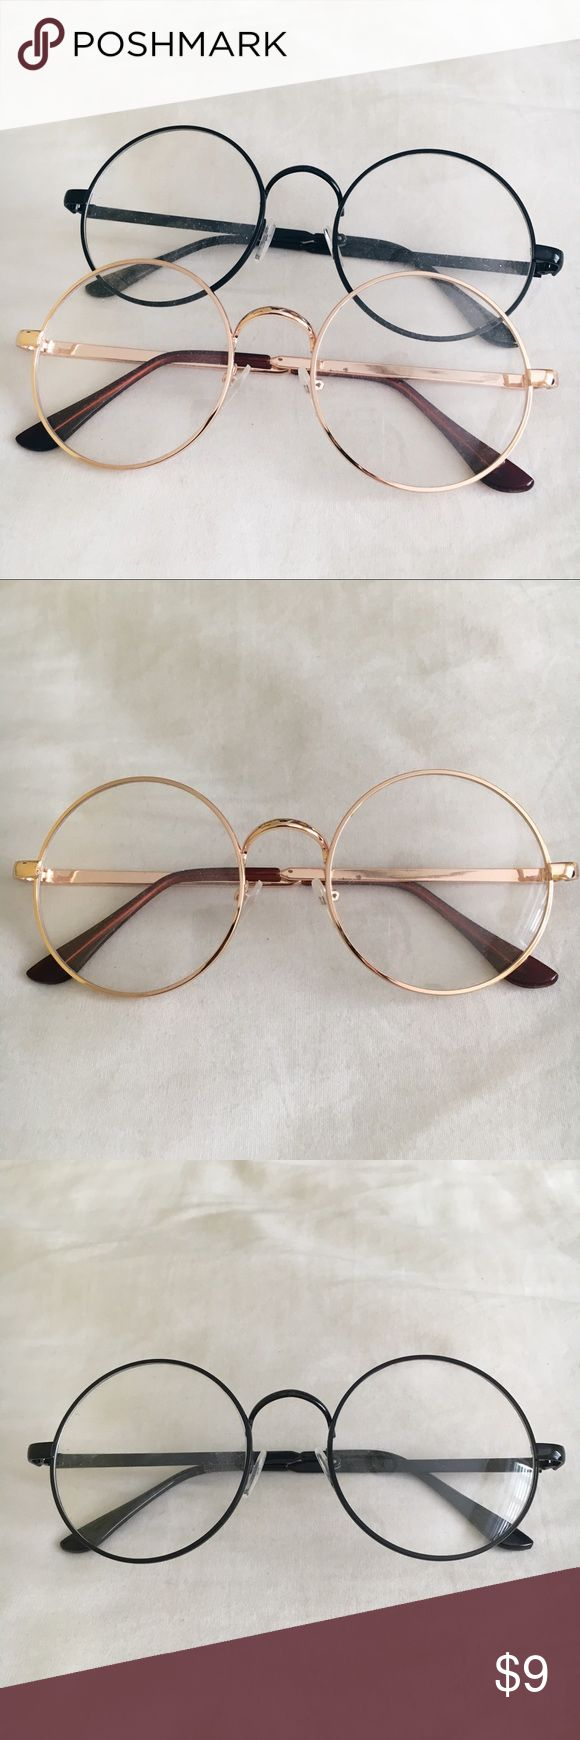 Korean Round Ulzzang Glasses A super trendy style inspired by the K Wave and Korean fashion. These round frames will make any style more classic. $9 each or bundle for a discount! One gold & one black pair available! Mixxmix Accessories Glasses